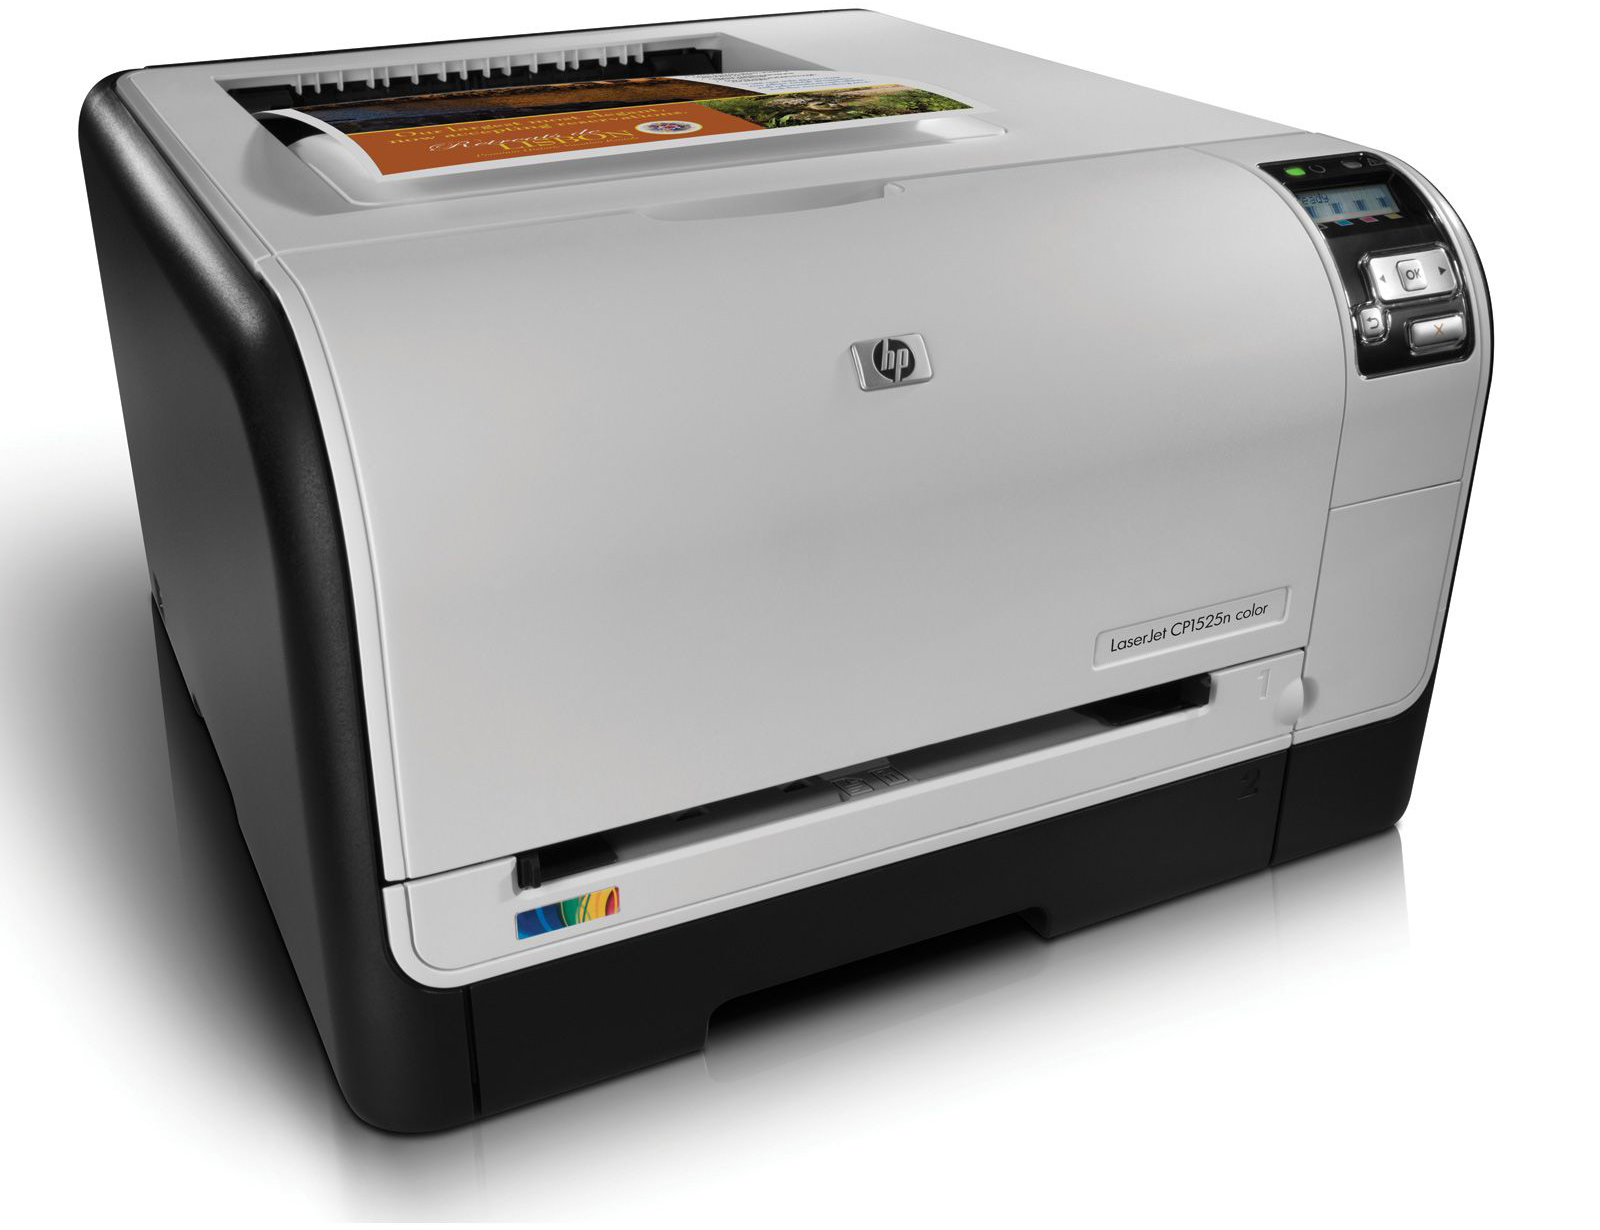 Принтер HP LaserJet Pro CP1525n Color Printer